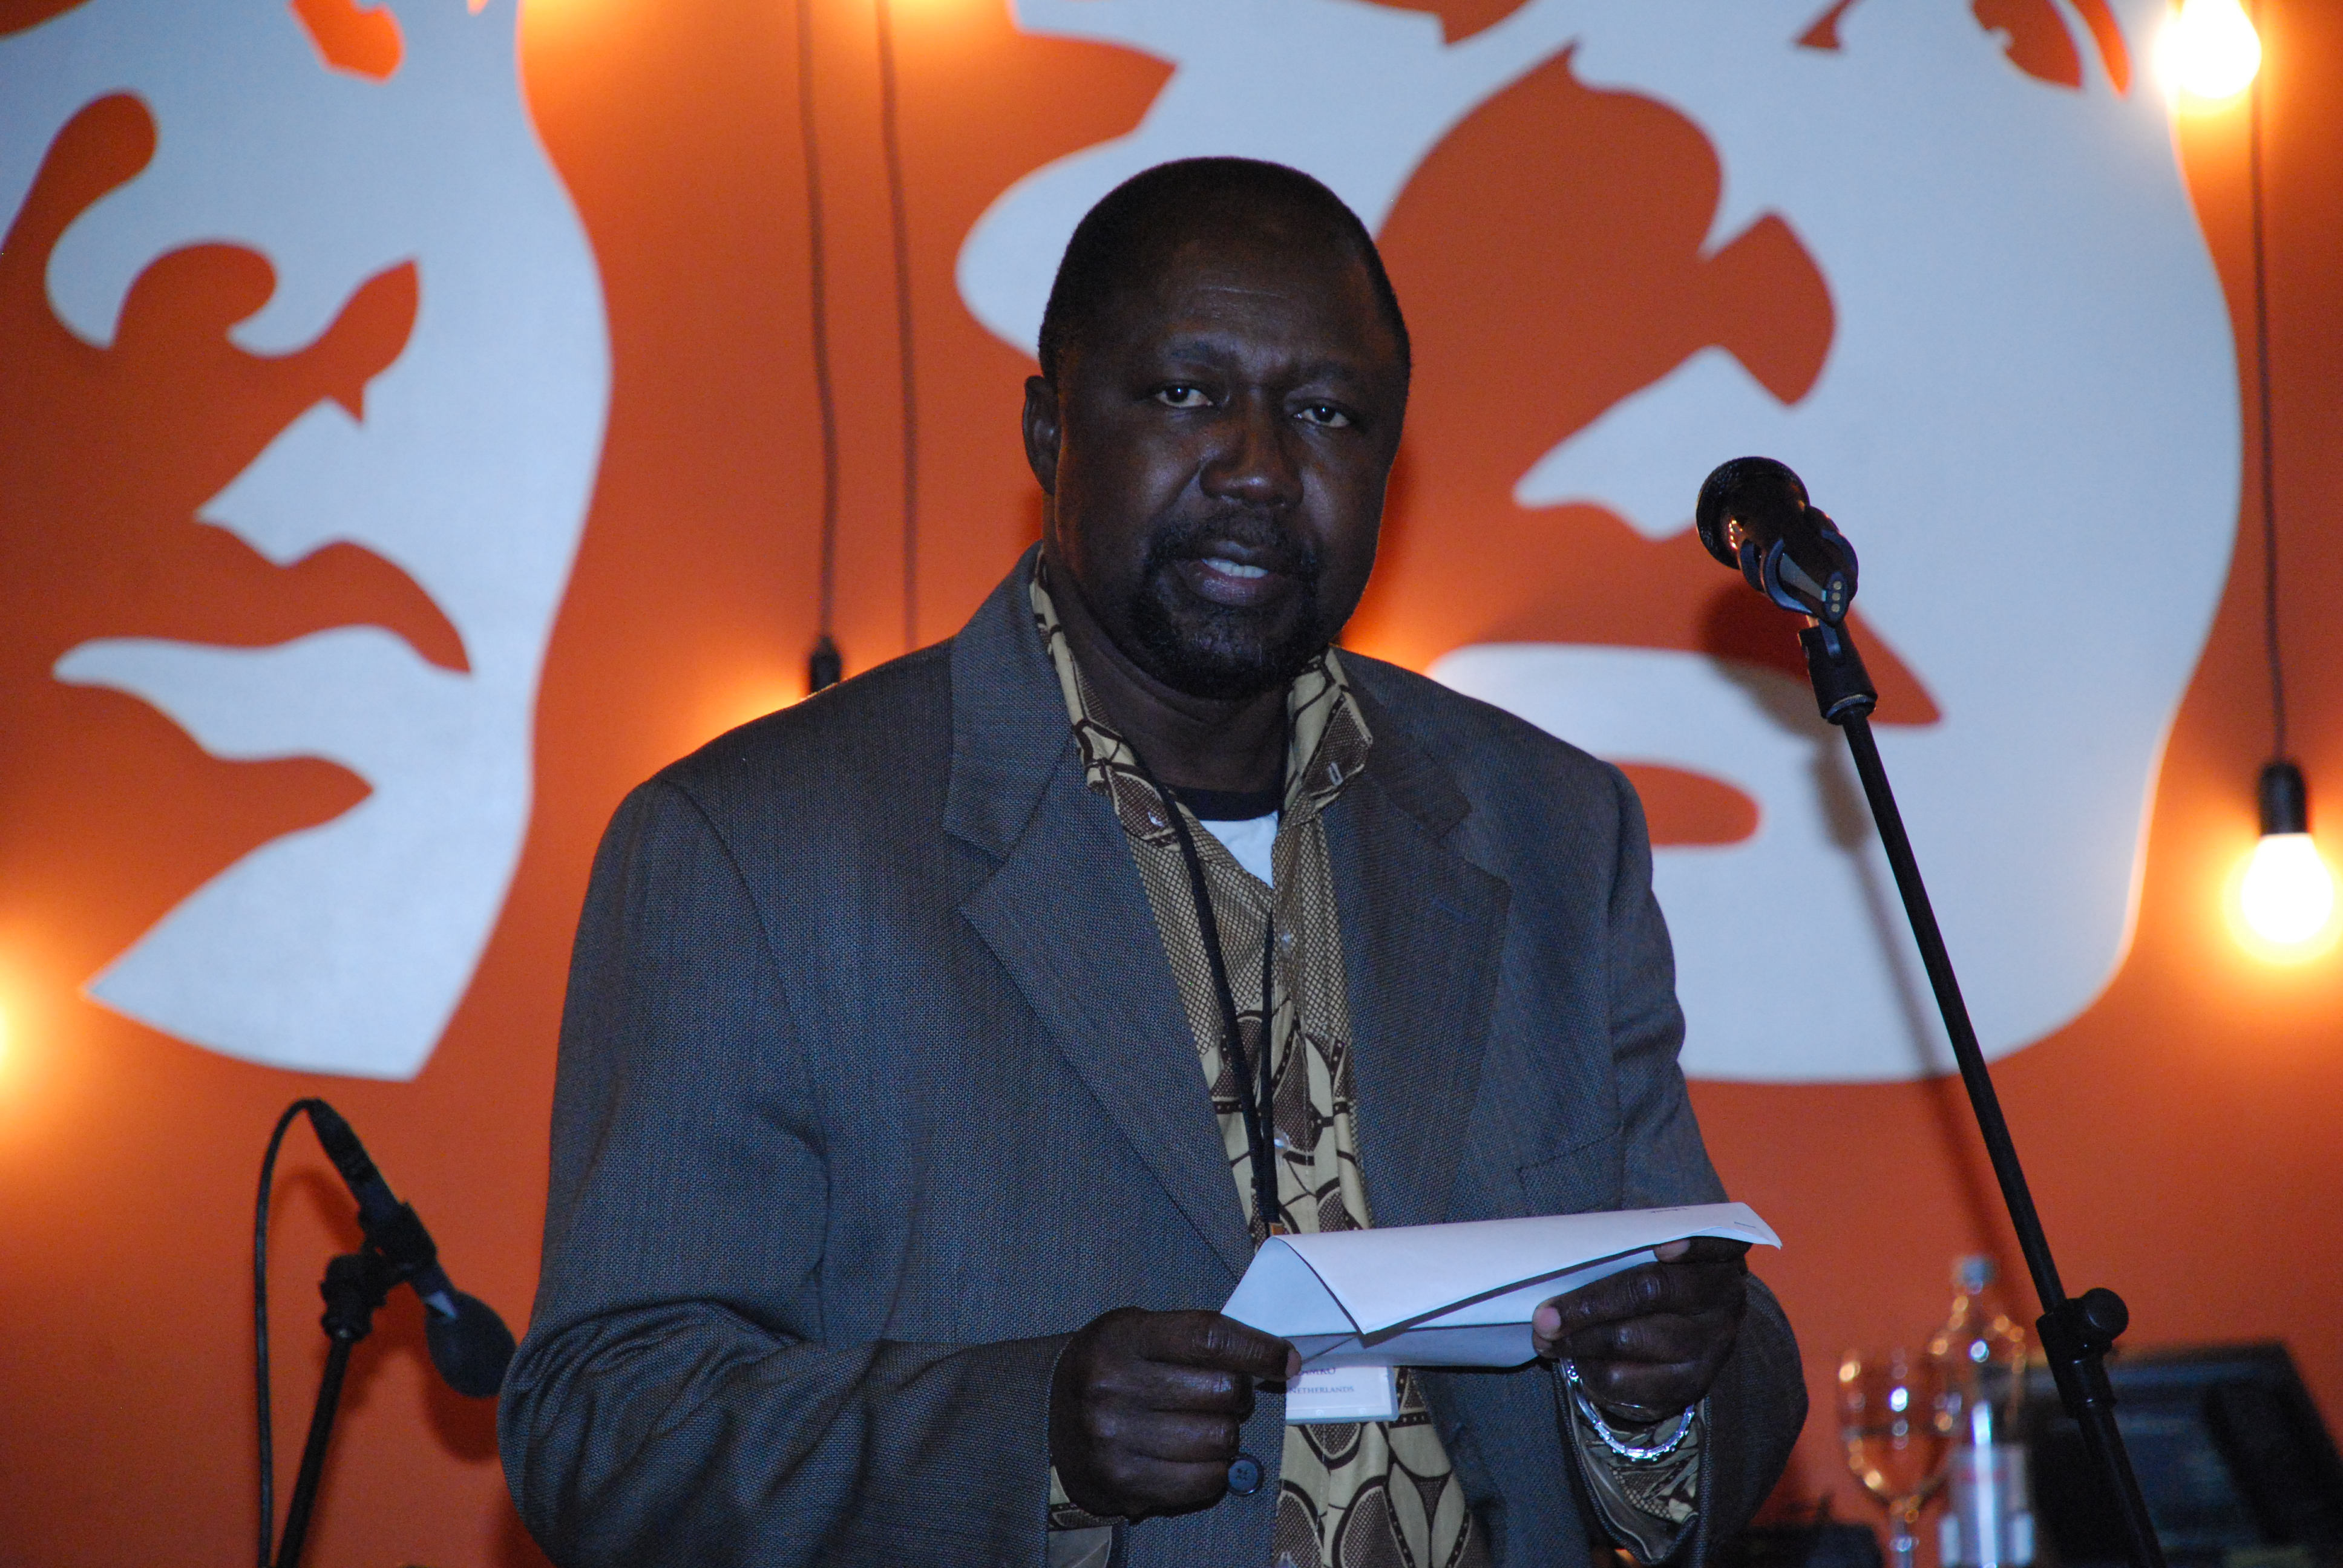 Koulsy Lamko from Chad, Guest Writer in Amsterdam, reading at an event during the General Assembly.